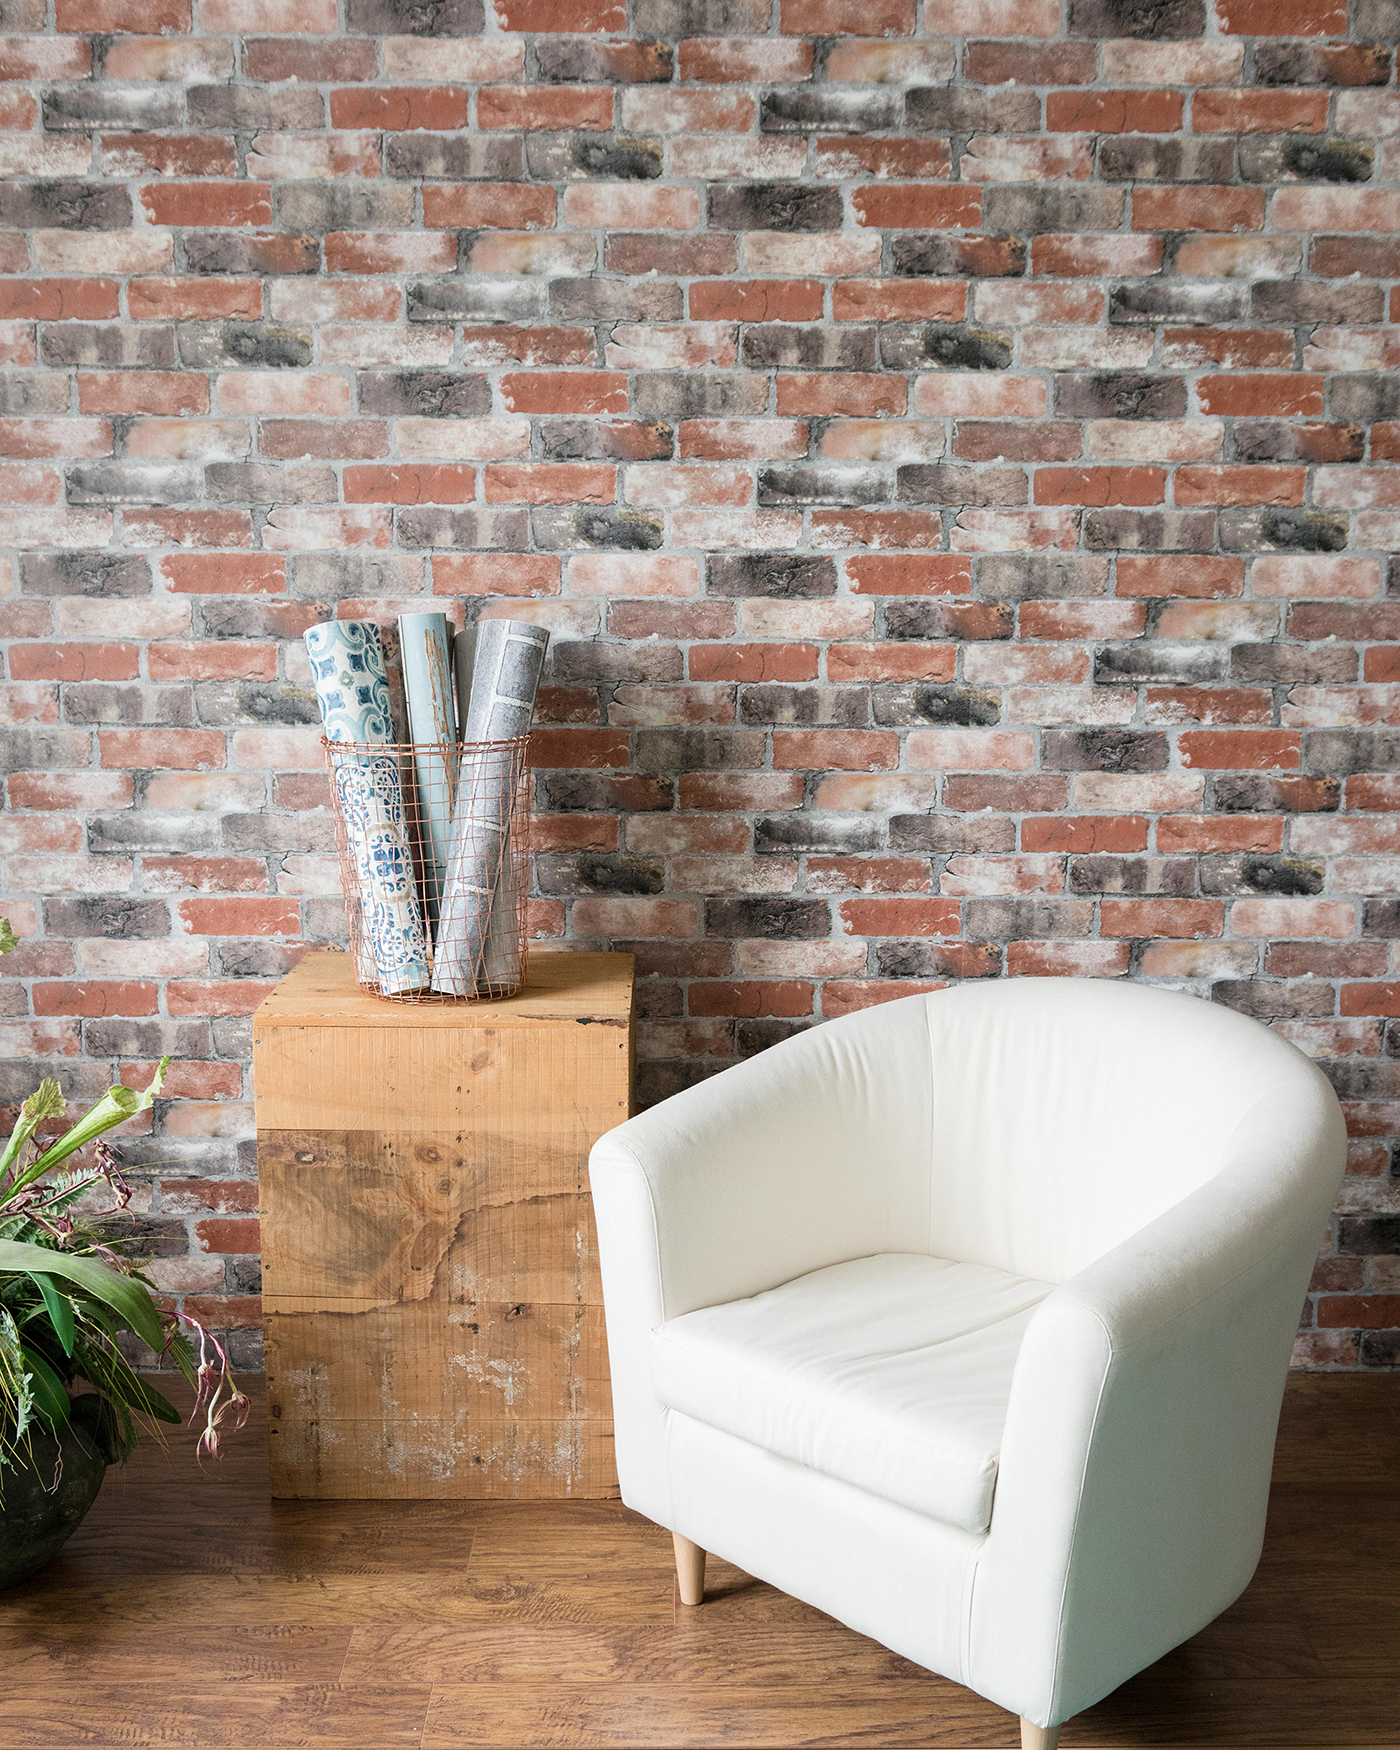 Faux exposed brick wall made with brick wallpaper